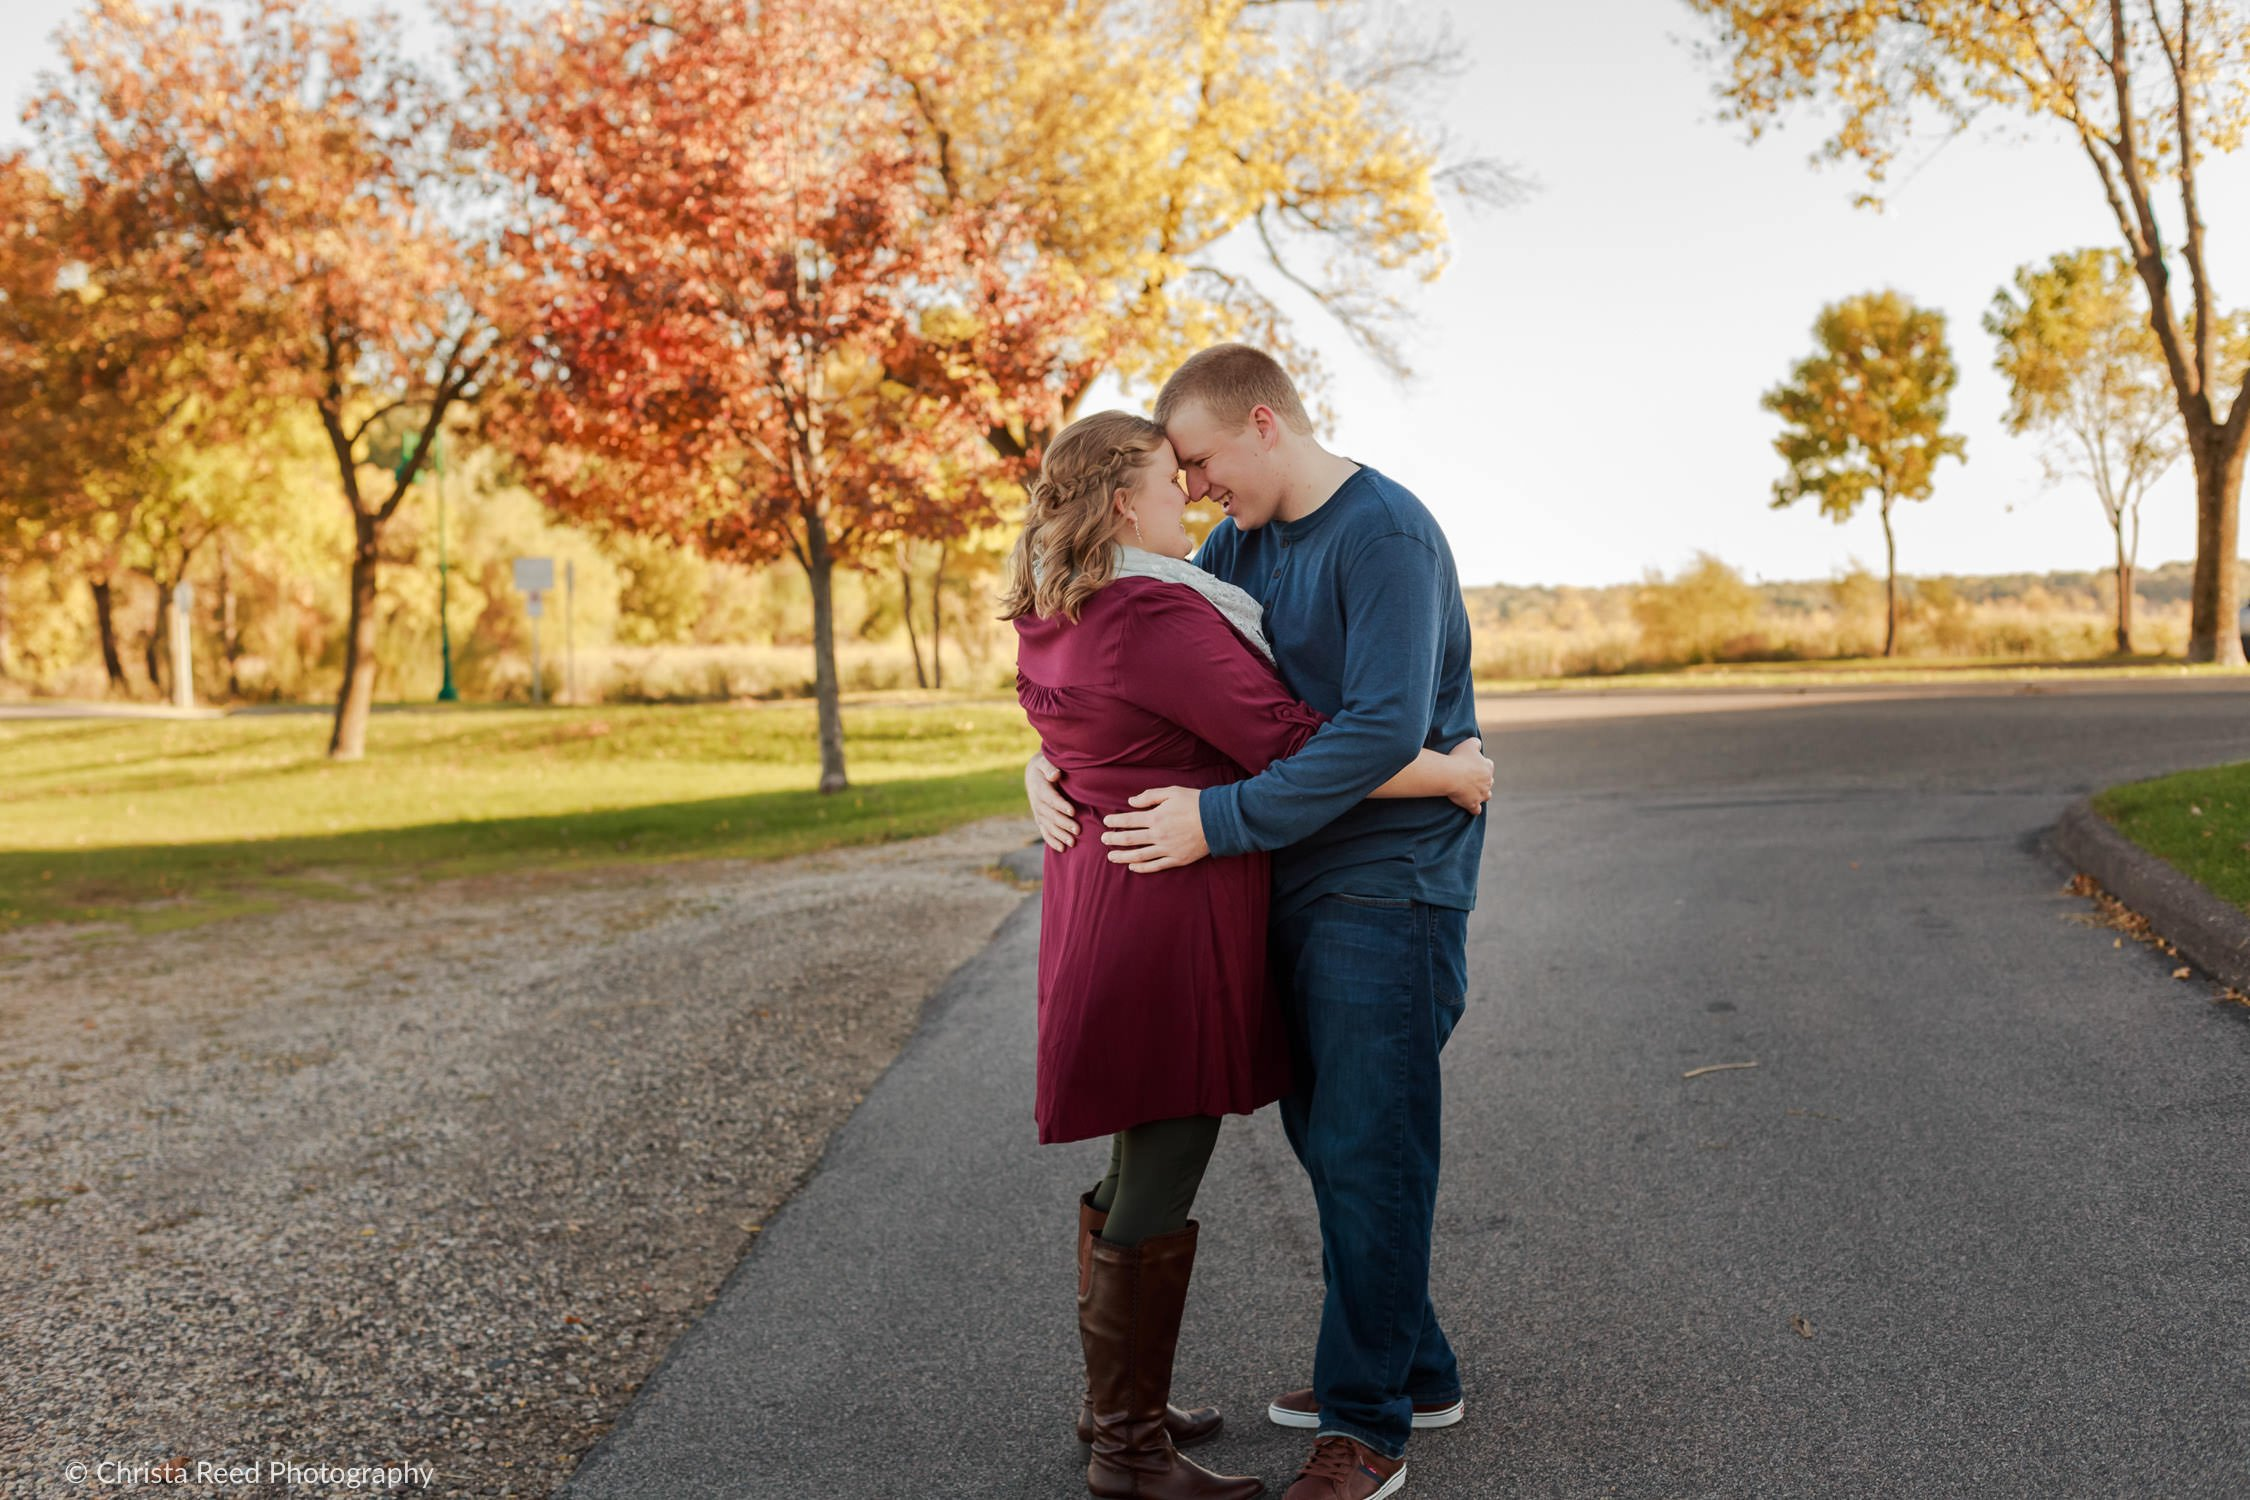 fall colors for an engagement shoot at white bear lake matoska park